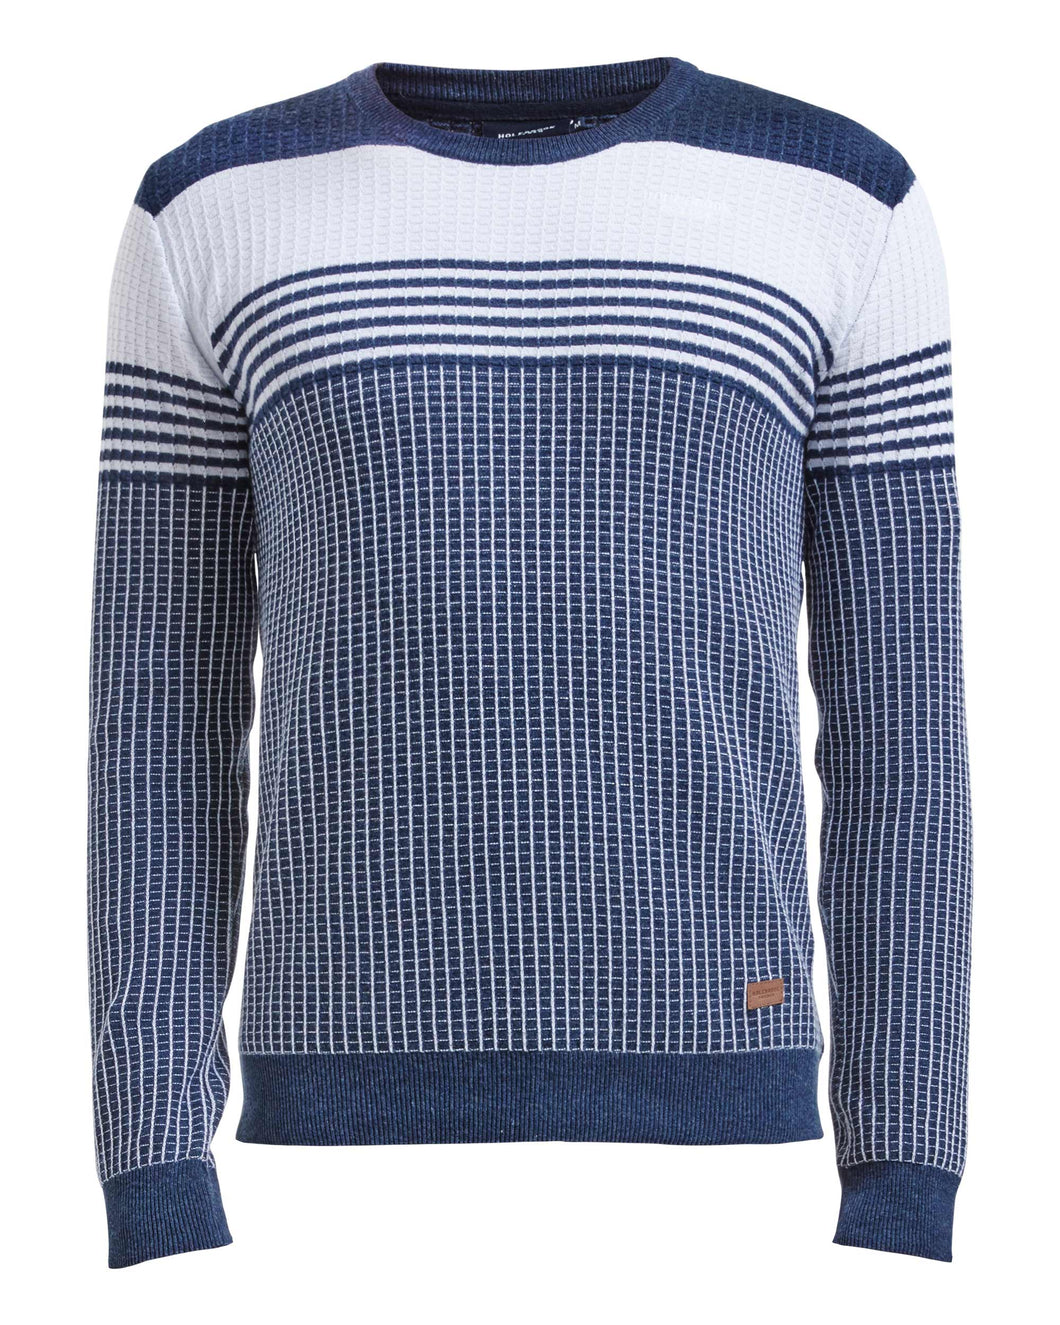 Holebrook Sweden Elias Crew Neck Jumper